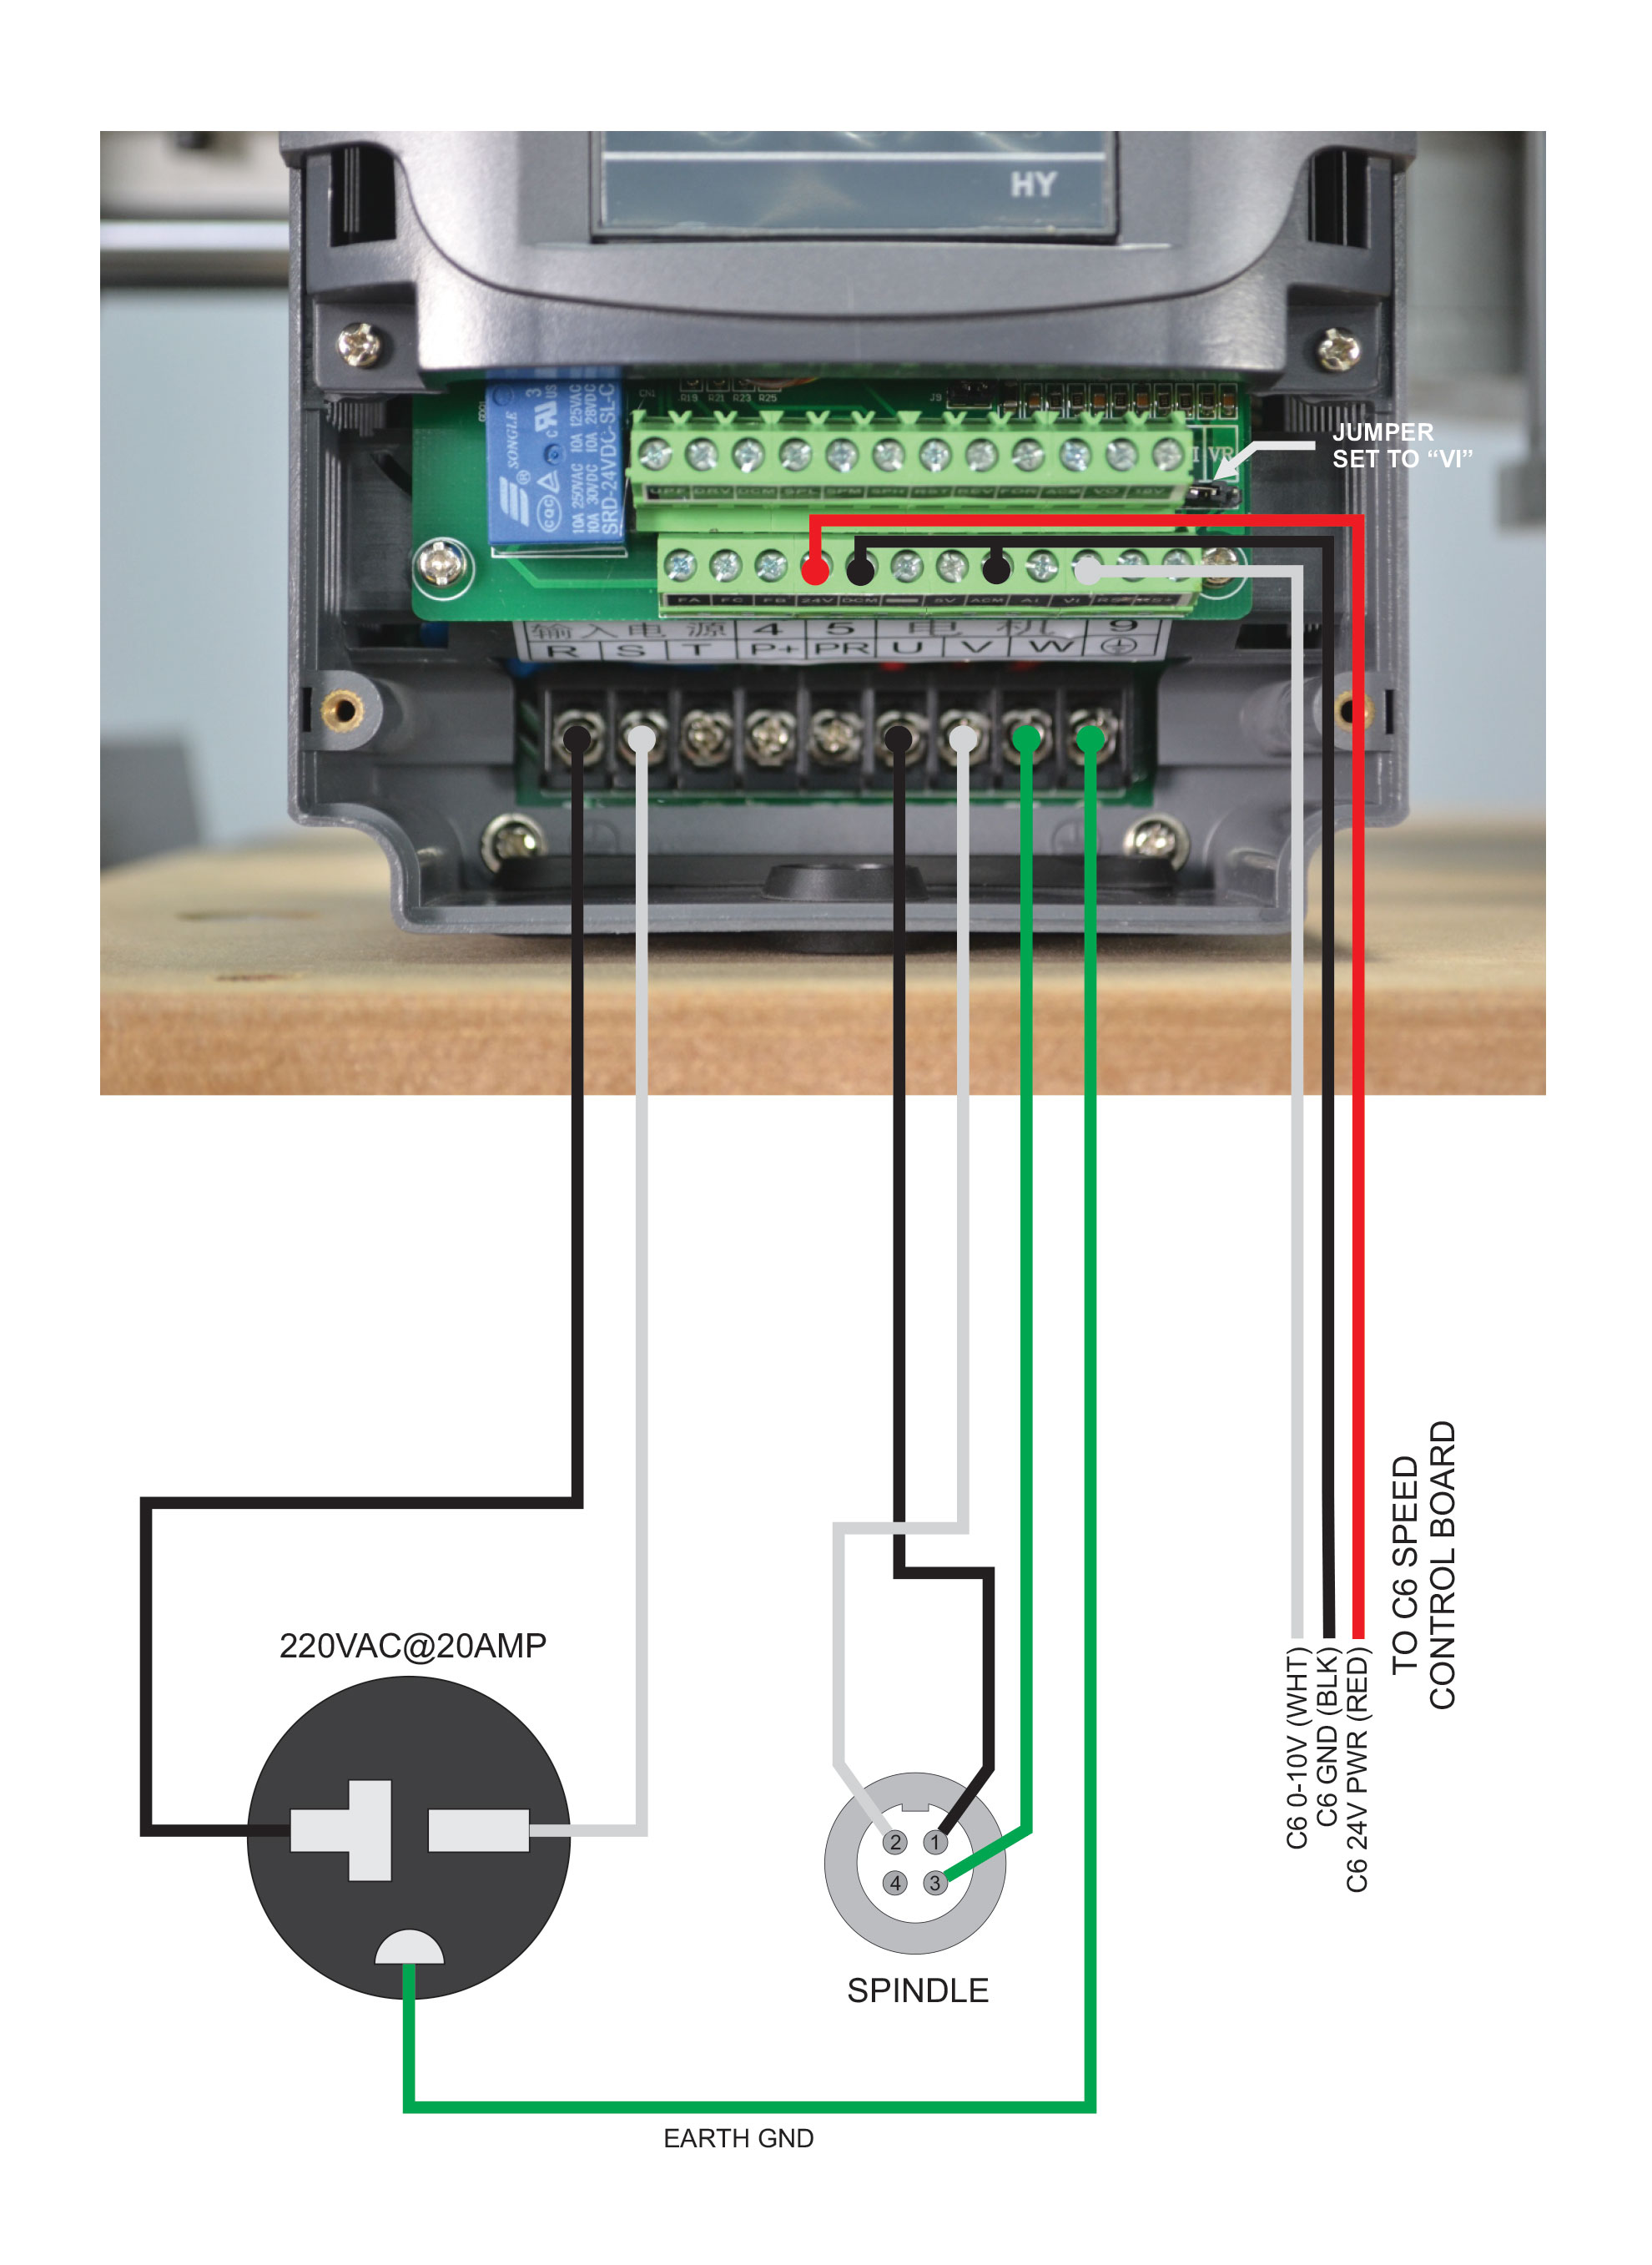 Powerwall Ac Layout likewise Bmw R Rt Fuse Box Diagram likewise Sma Sb Us Inverter Residential Installation San Juan Bautista Calif likewise Inverter Fuji Easy Control also Vfd Wiring Diagram. on inverter wiring diagram